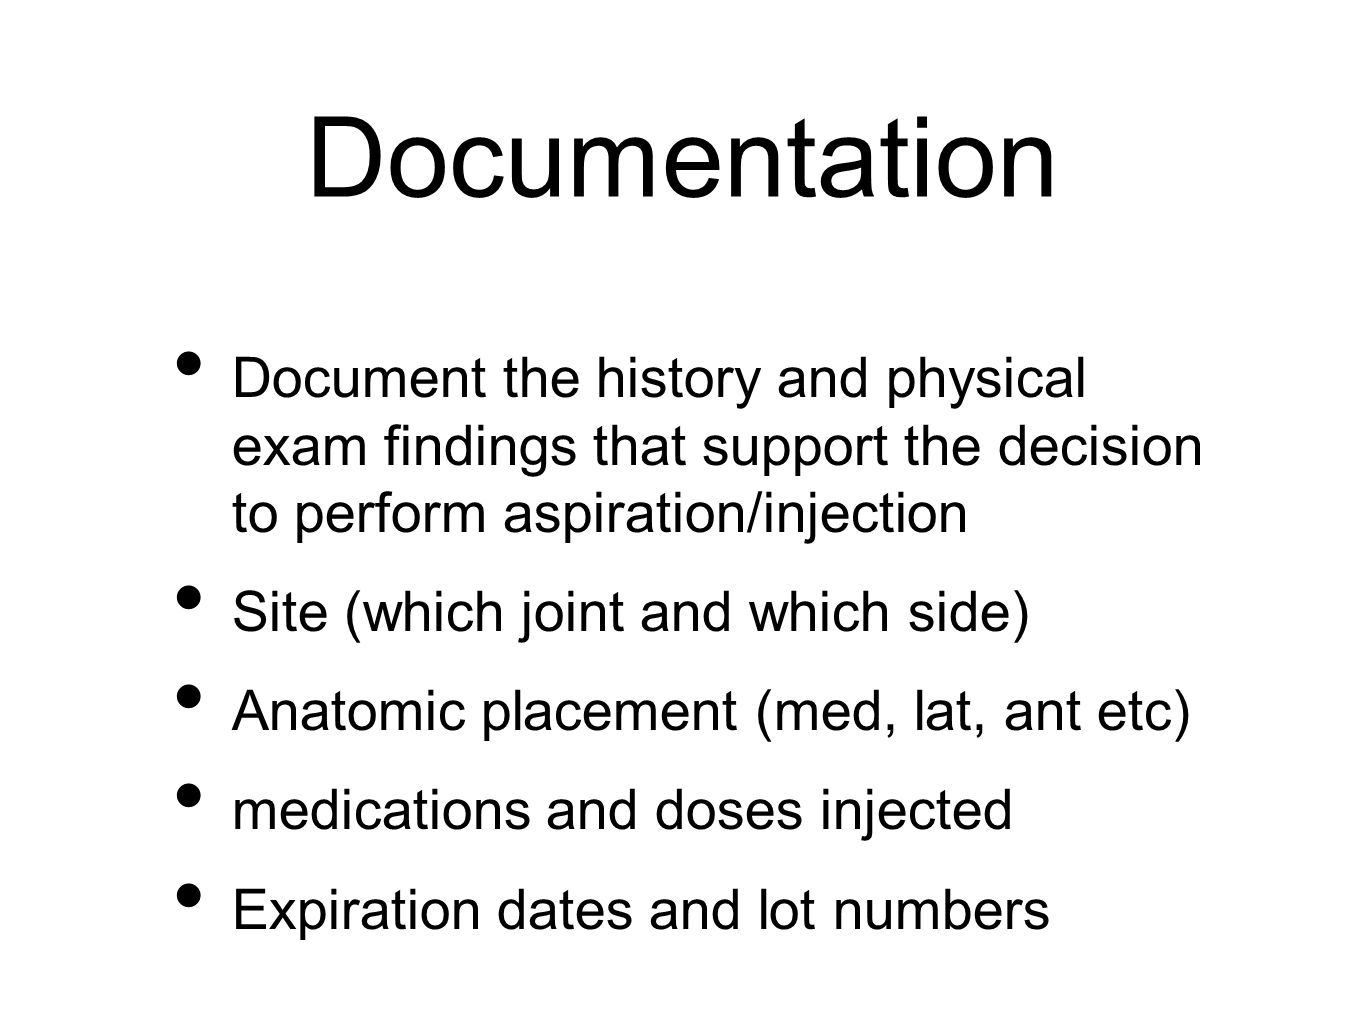 Documentation Document the history and physical exam findings that support the decision to perform aspiration/injection Site (which joint and which side) Anatomic placement (med, lat, ant etc) medications and doses injected Expiration dates and lot numbers